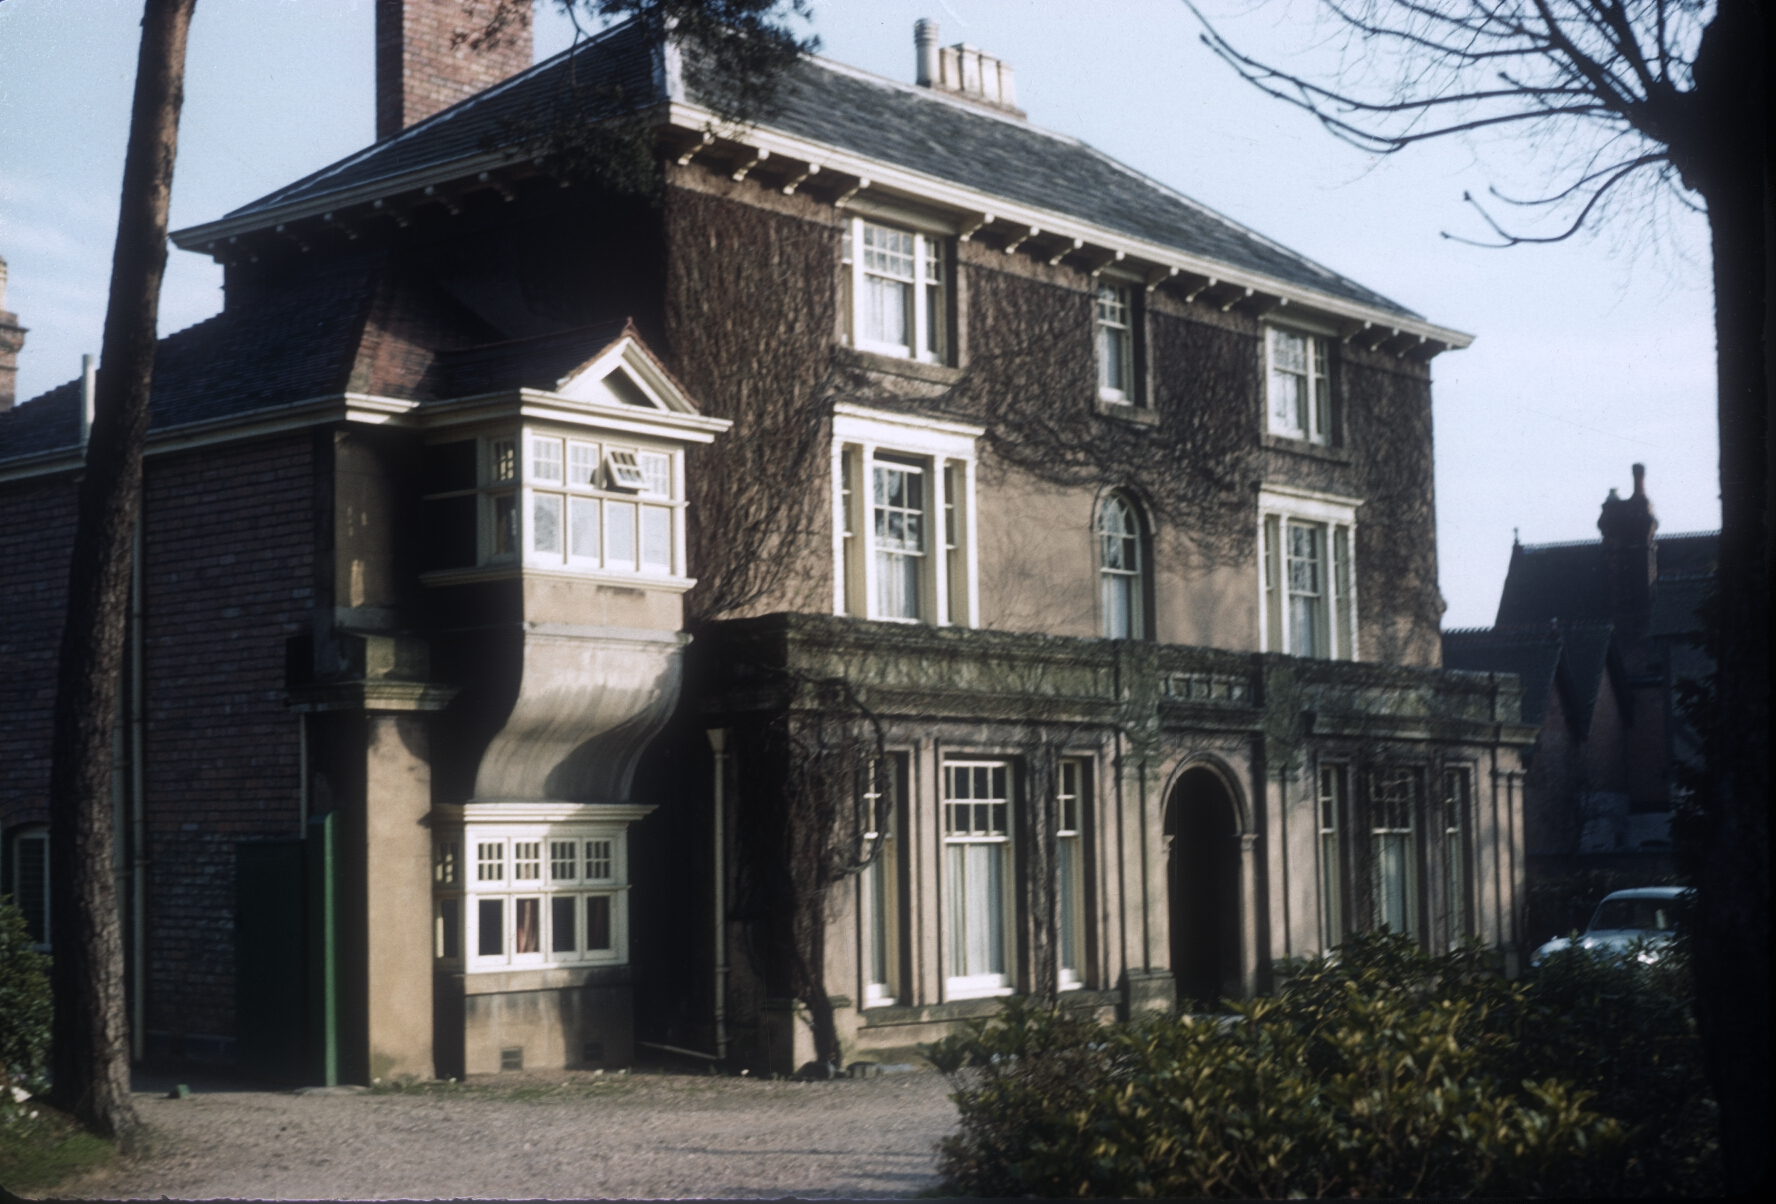 Harborne Field House, 110 Harborne Park Road. 6th March 1961